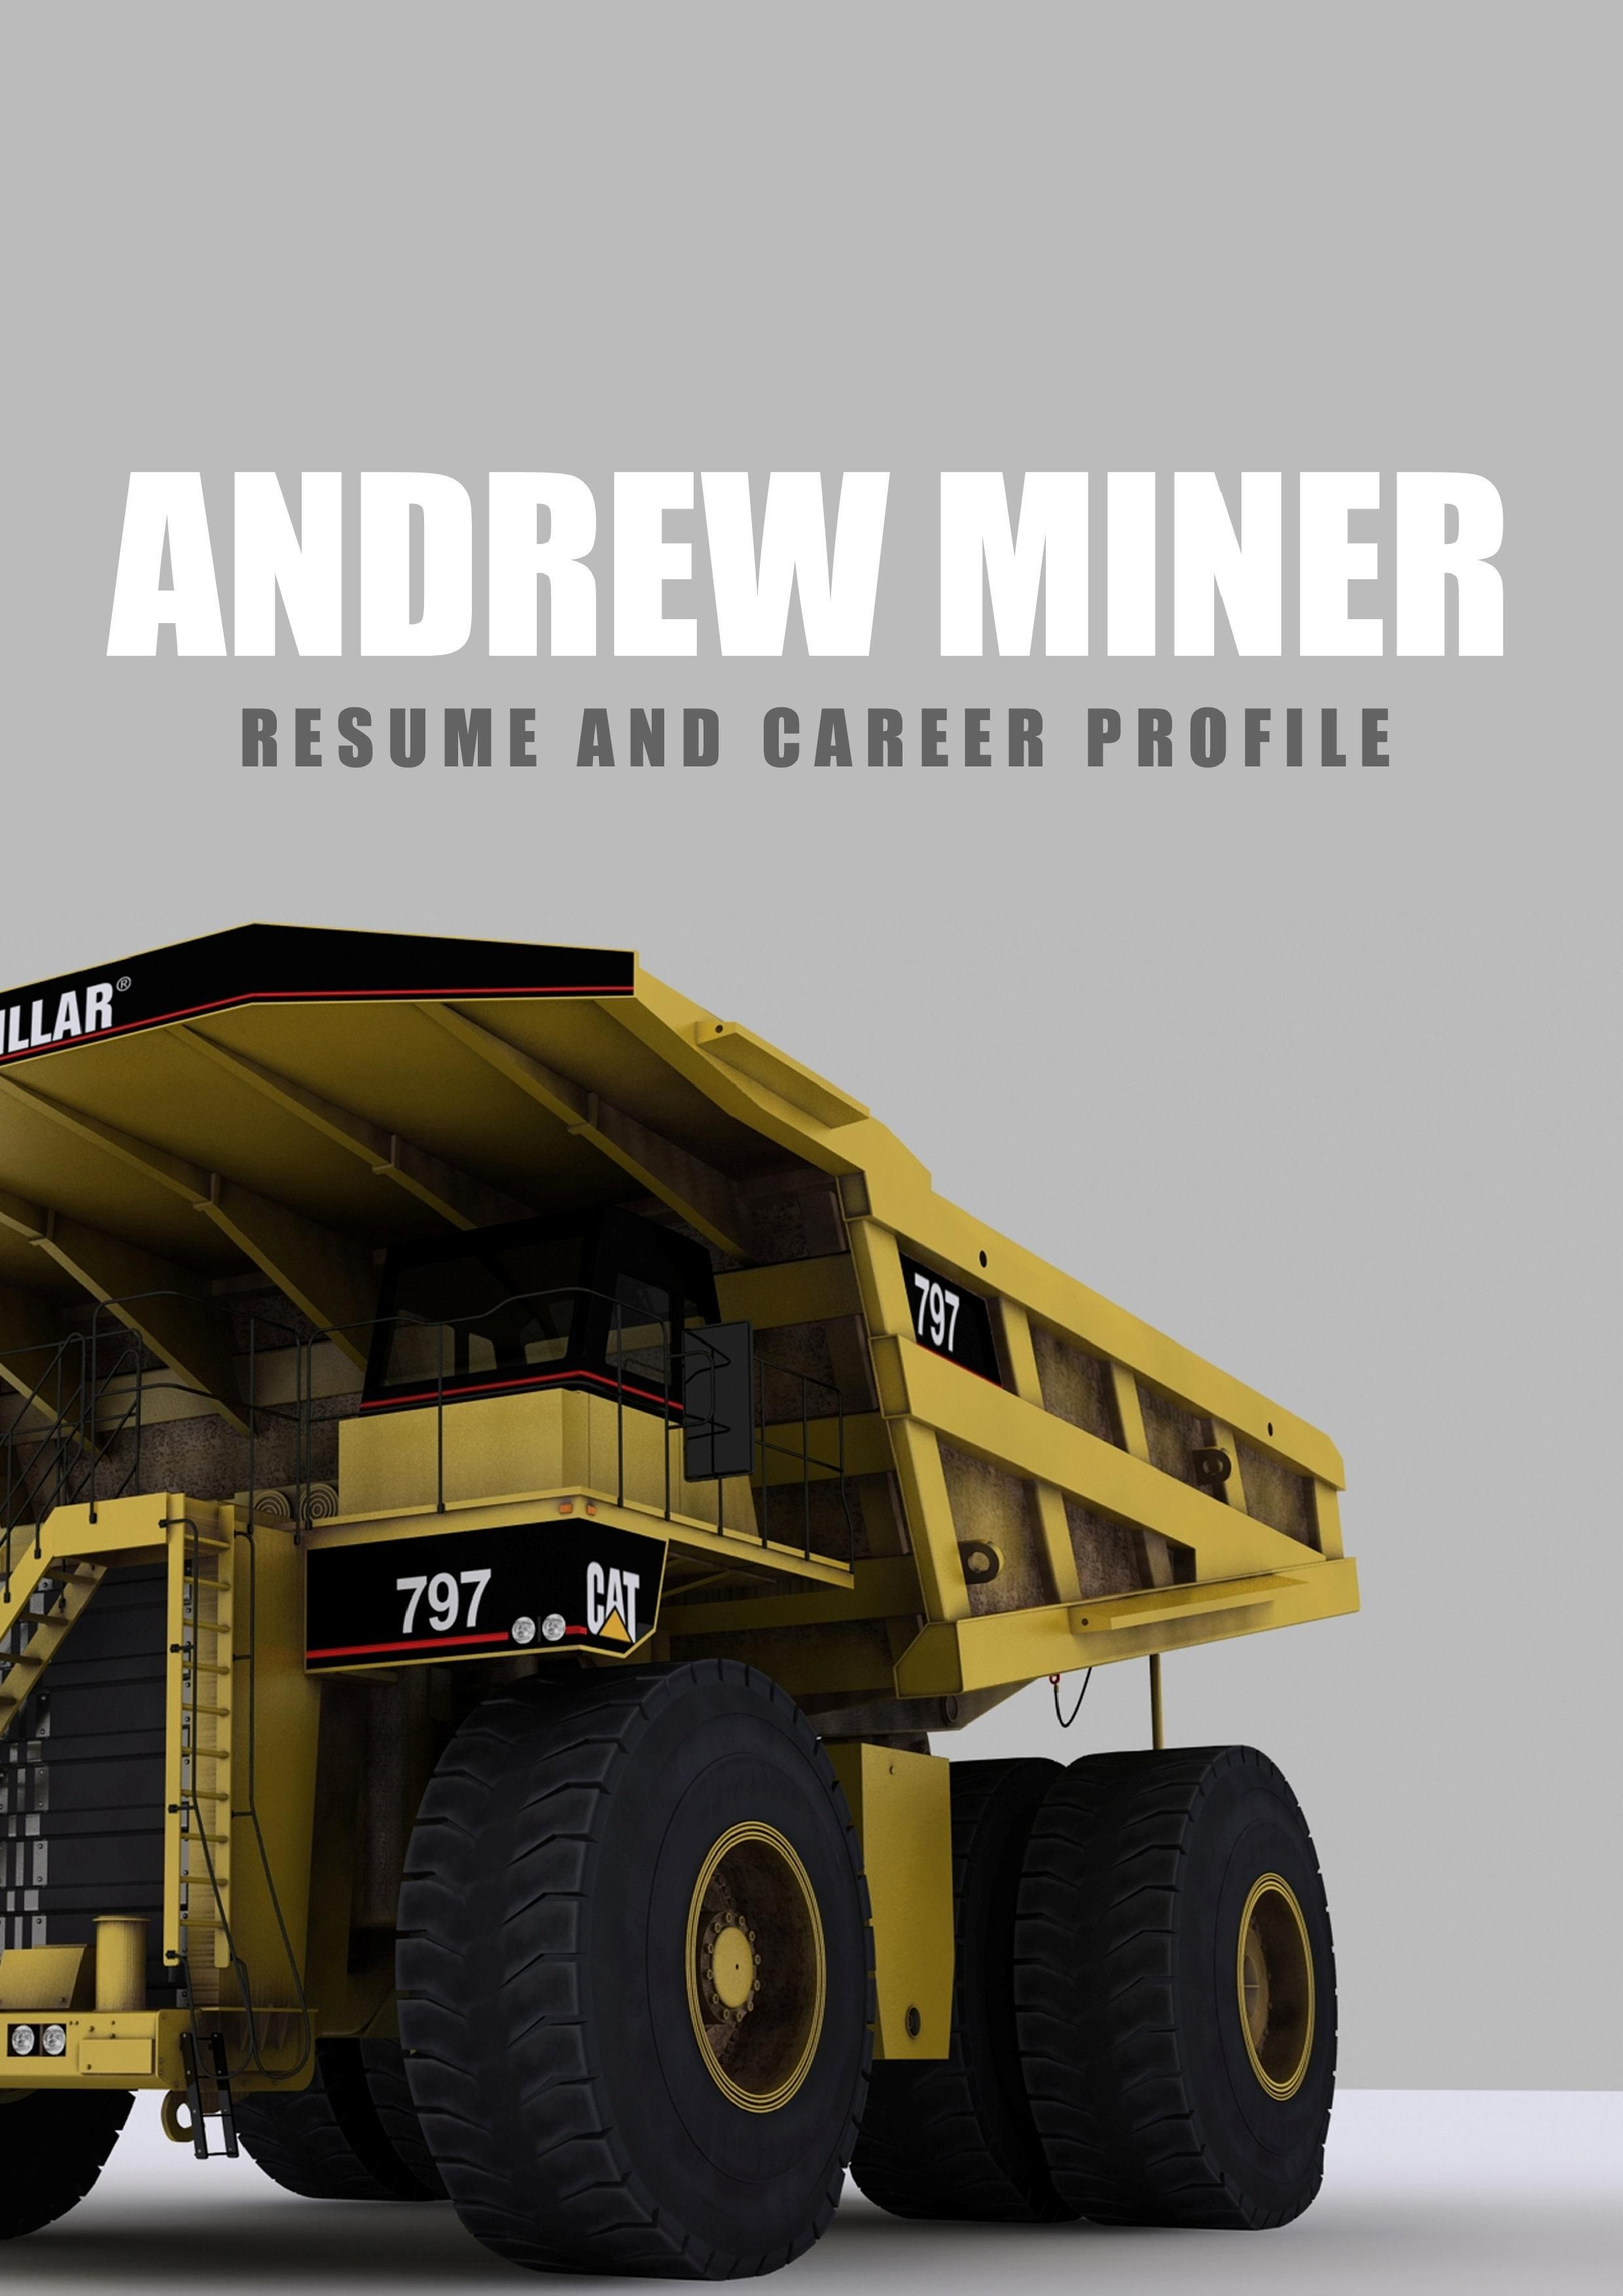 We can help with professional mining resume writing